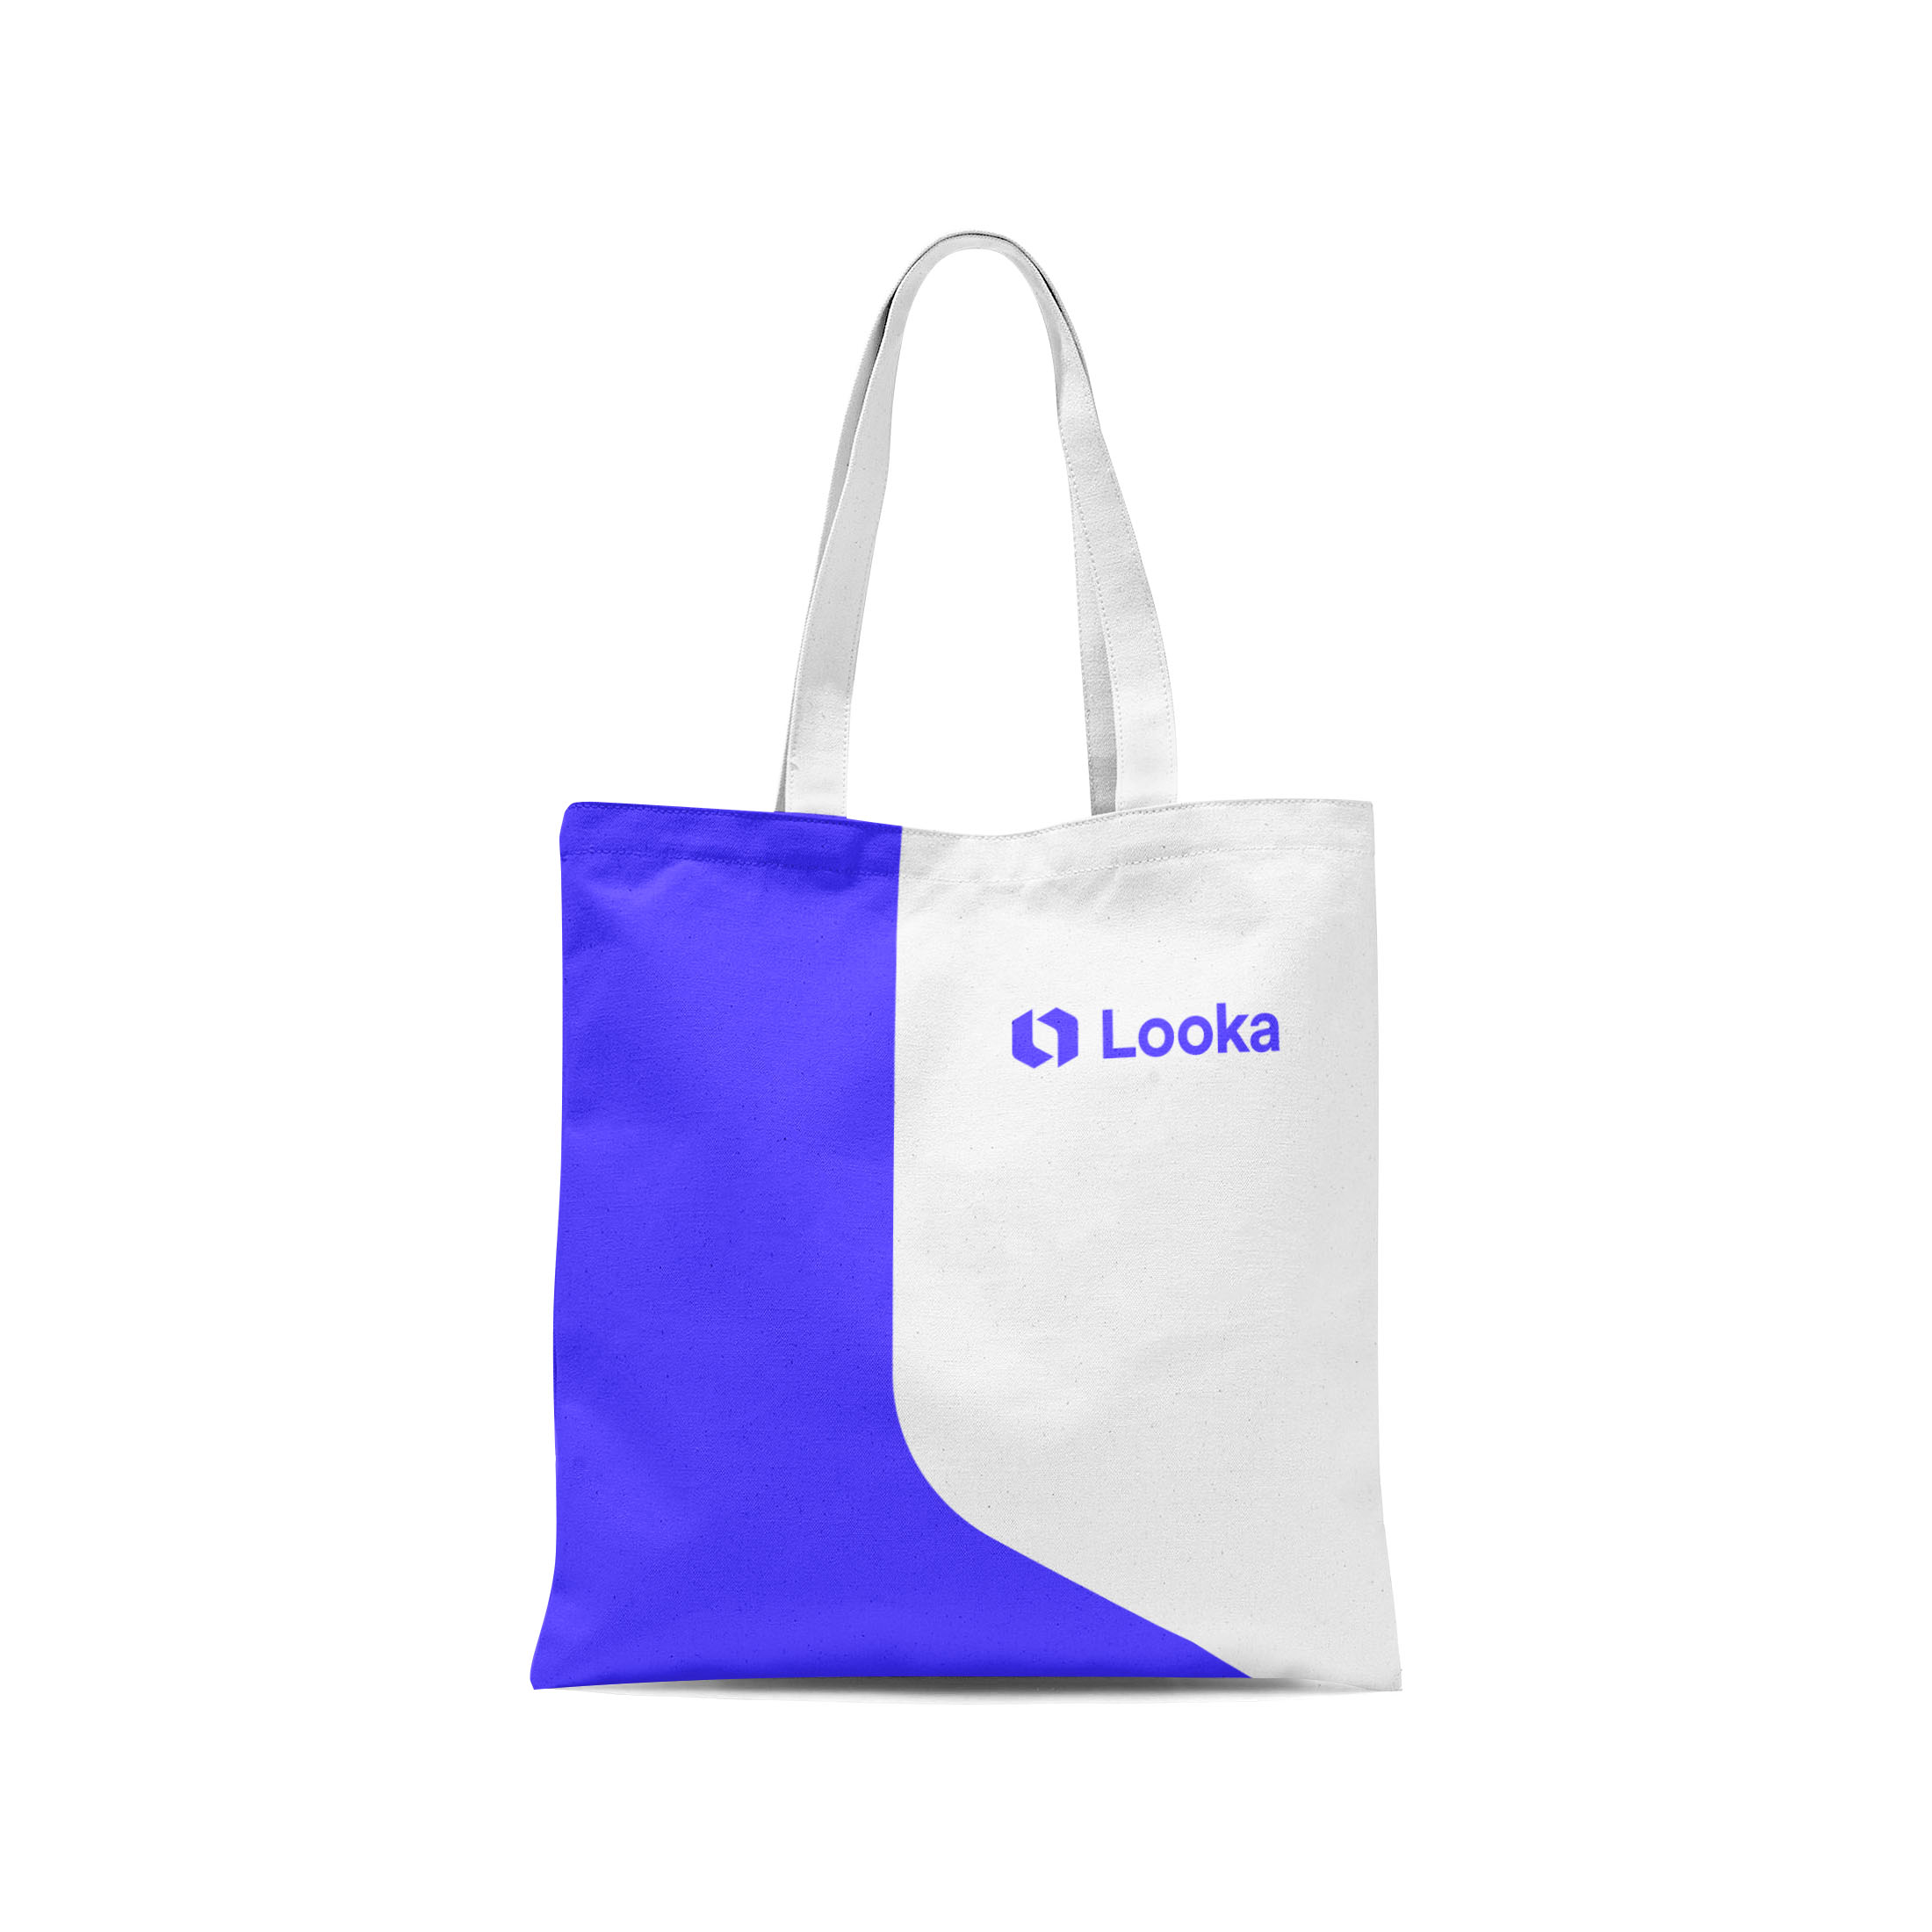 tote_bag_option2.jpg